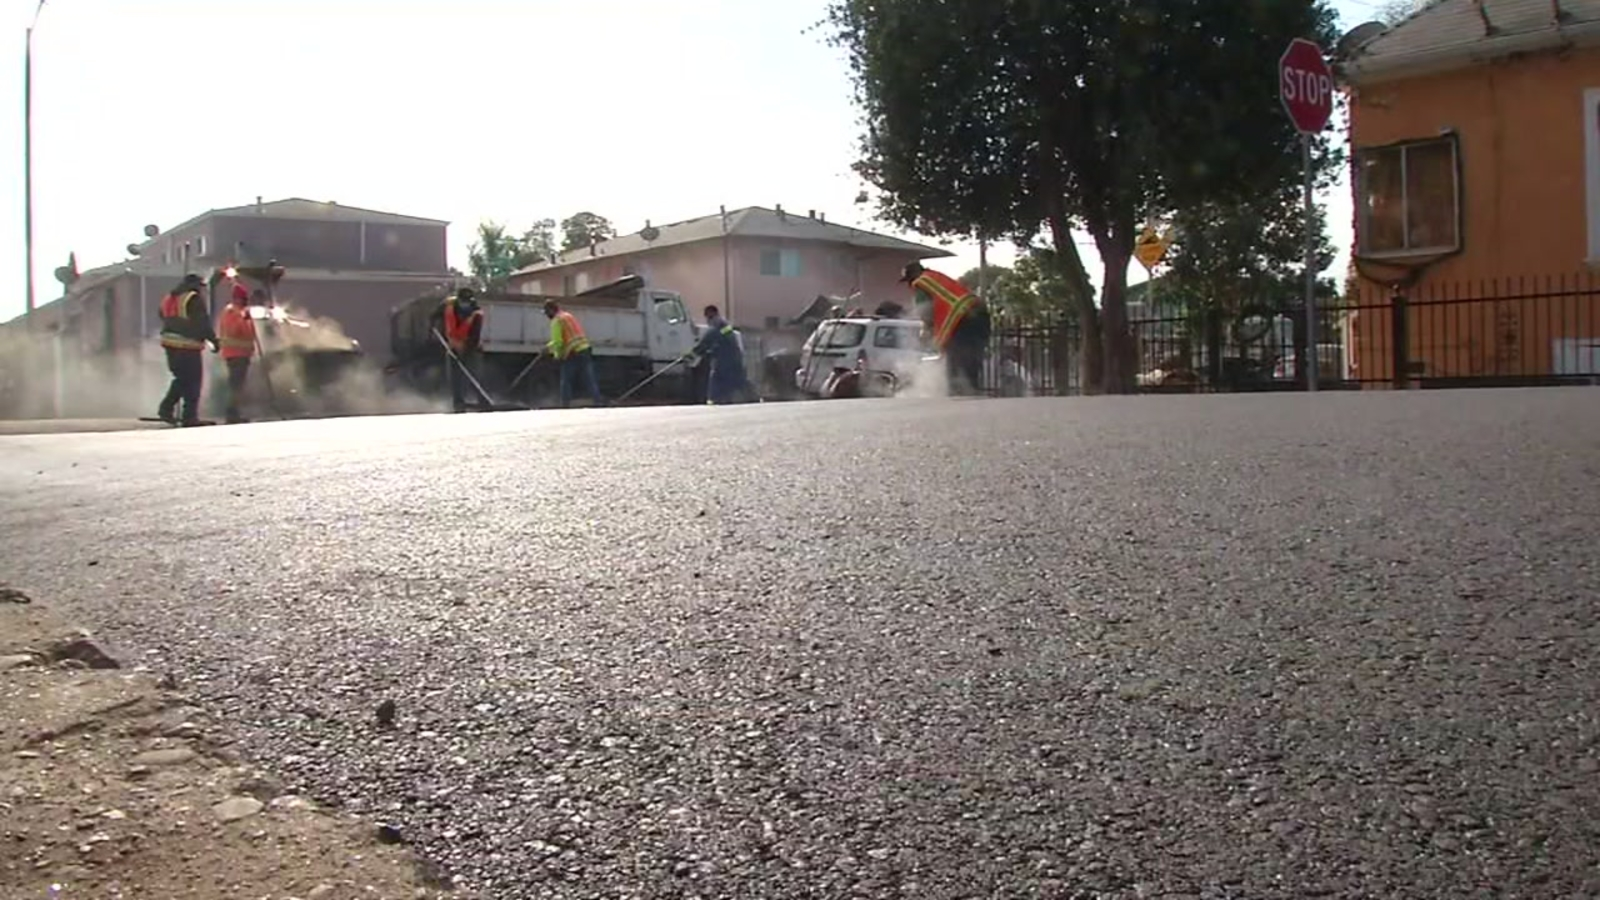 Nearly 40 miles of crumbling Oakland streets repaired at record-setting pace